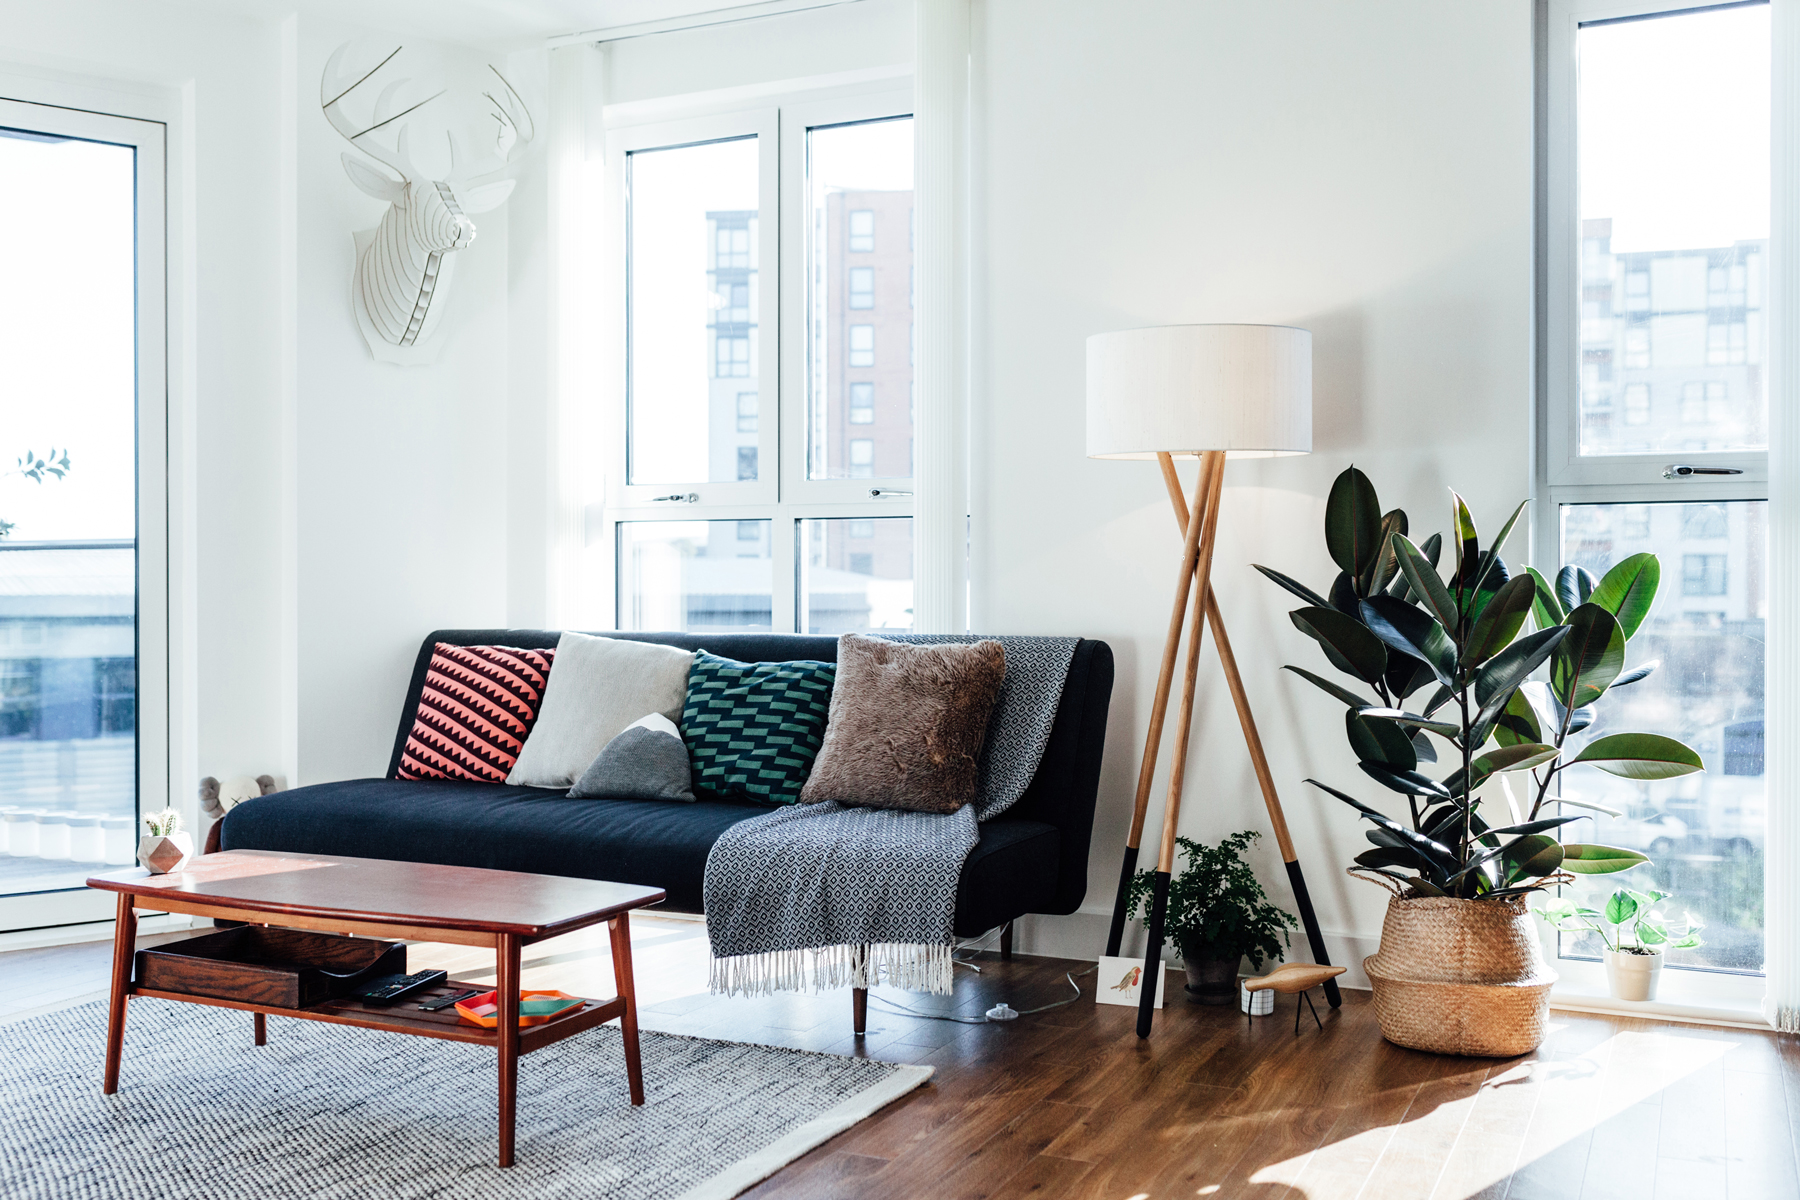 Small living room decorating ideas - small-space decor and design inspiration